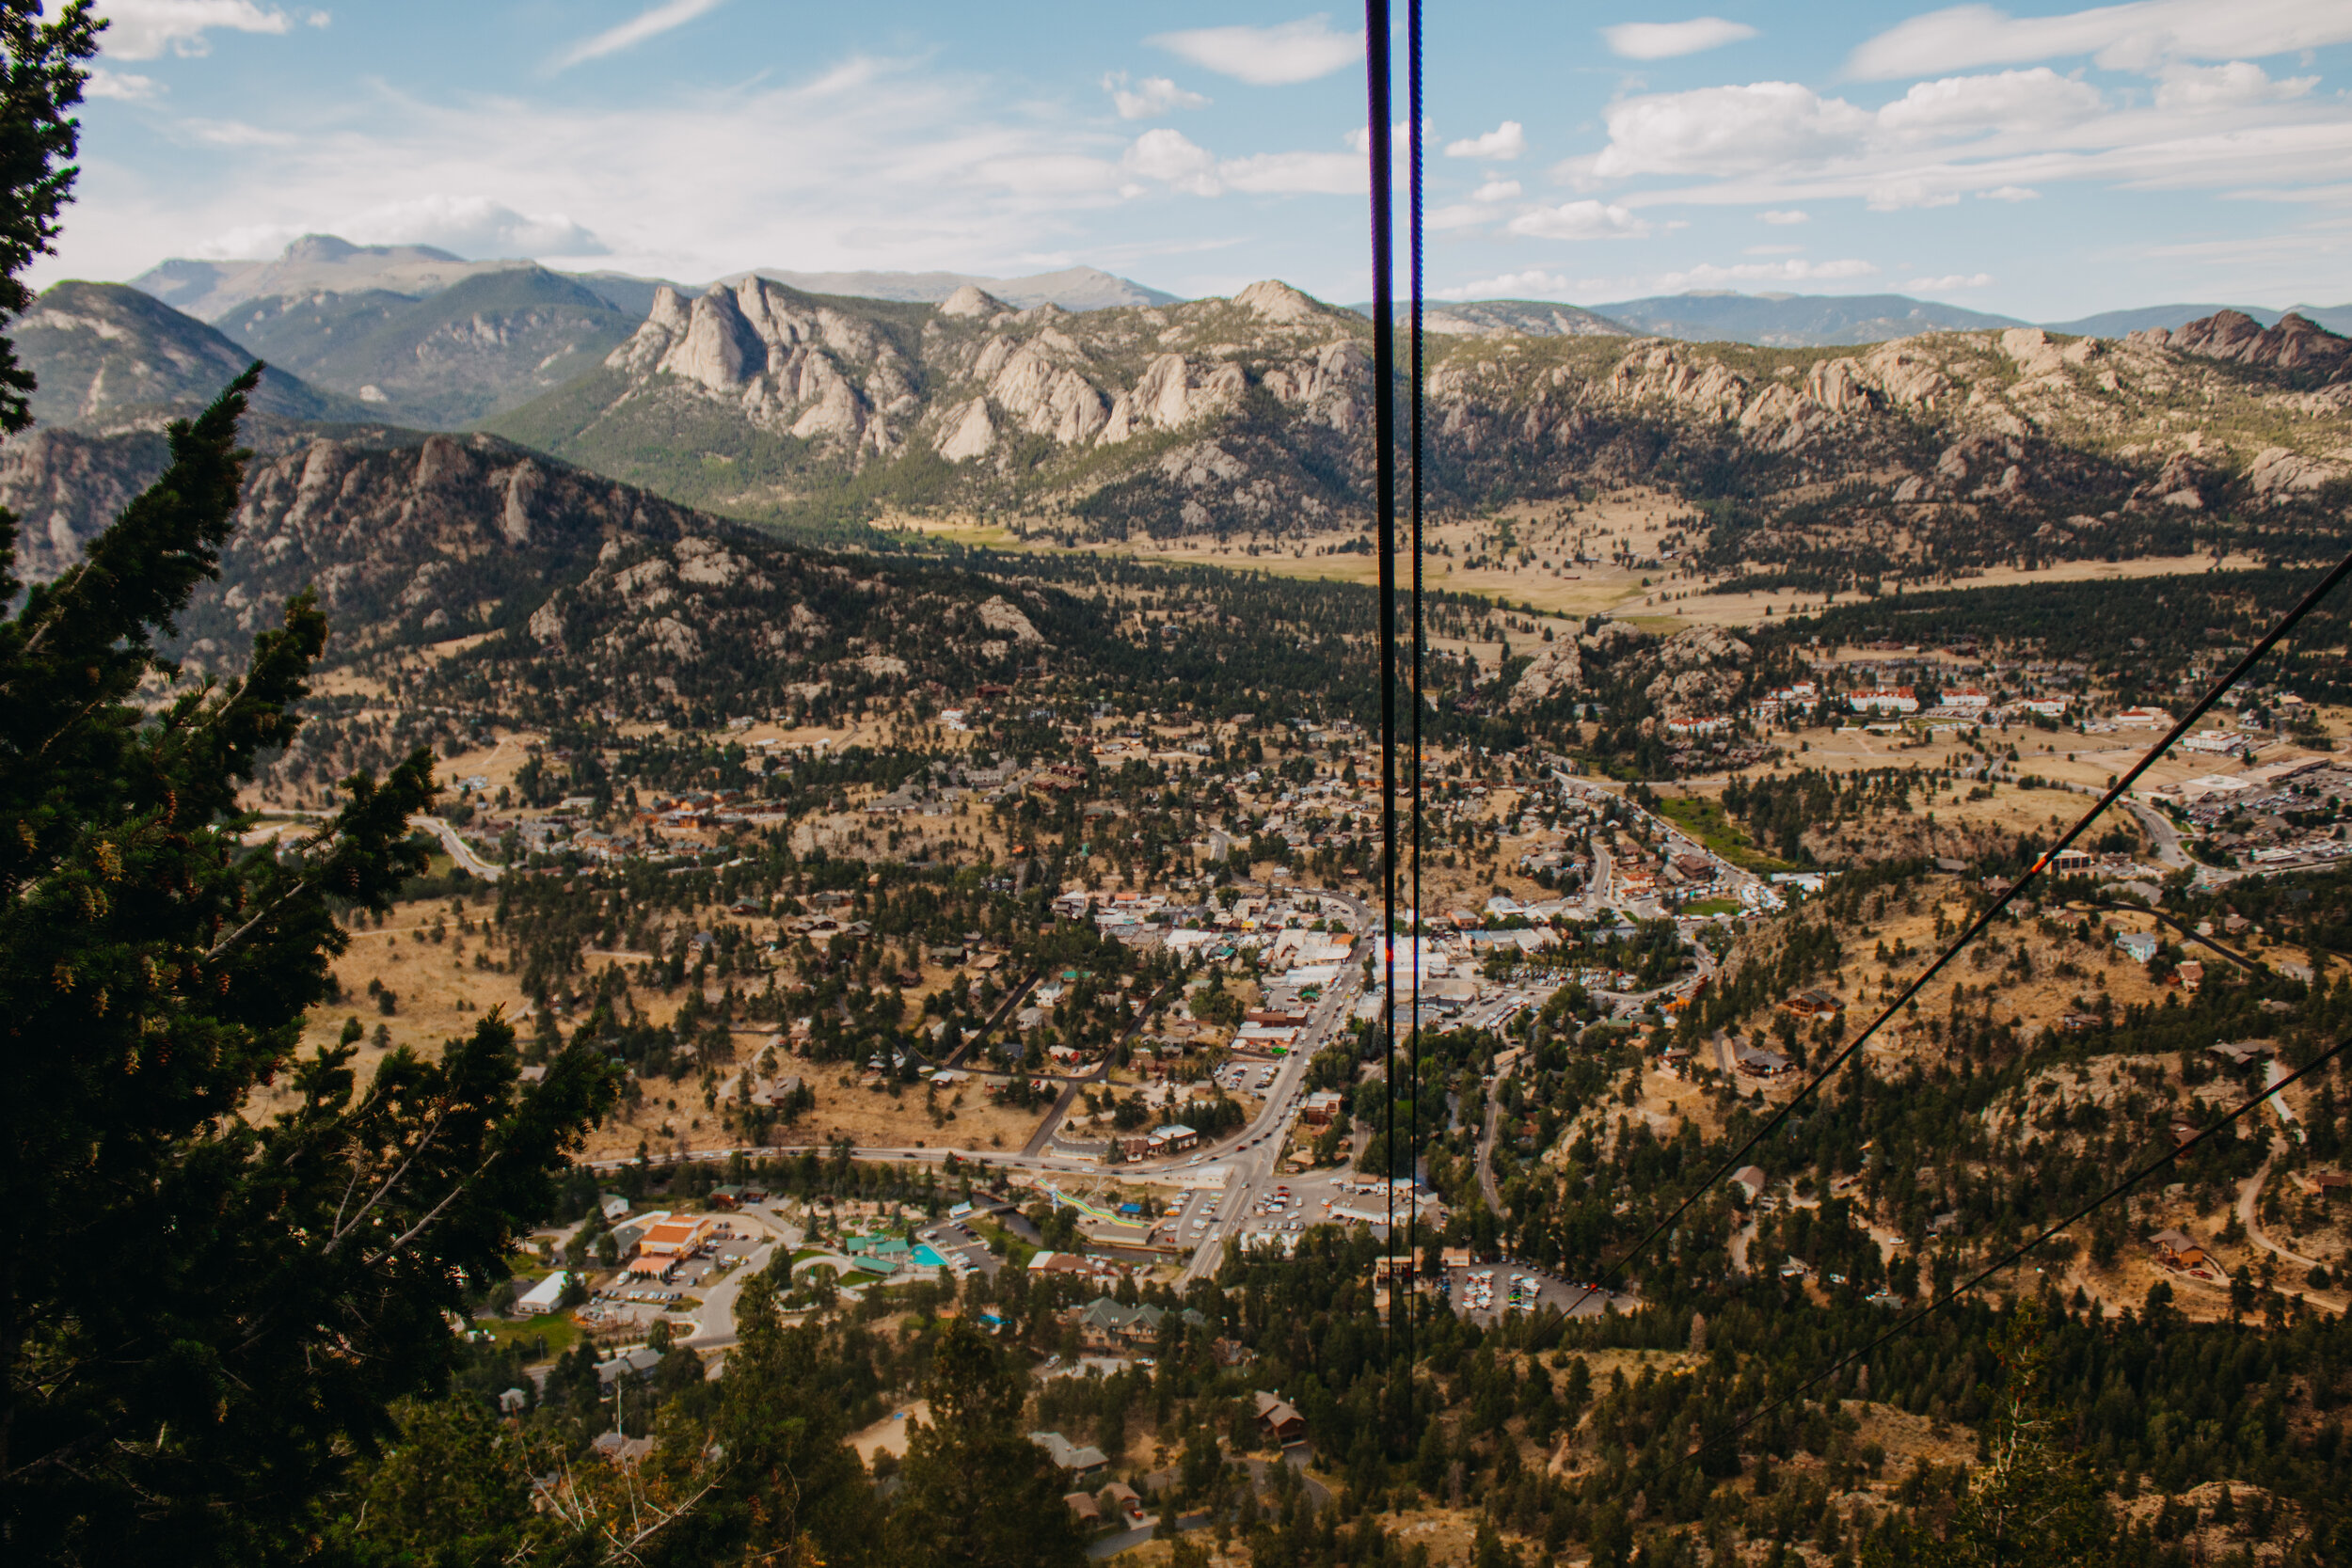 The view of Estes Park on our way back down.